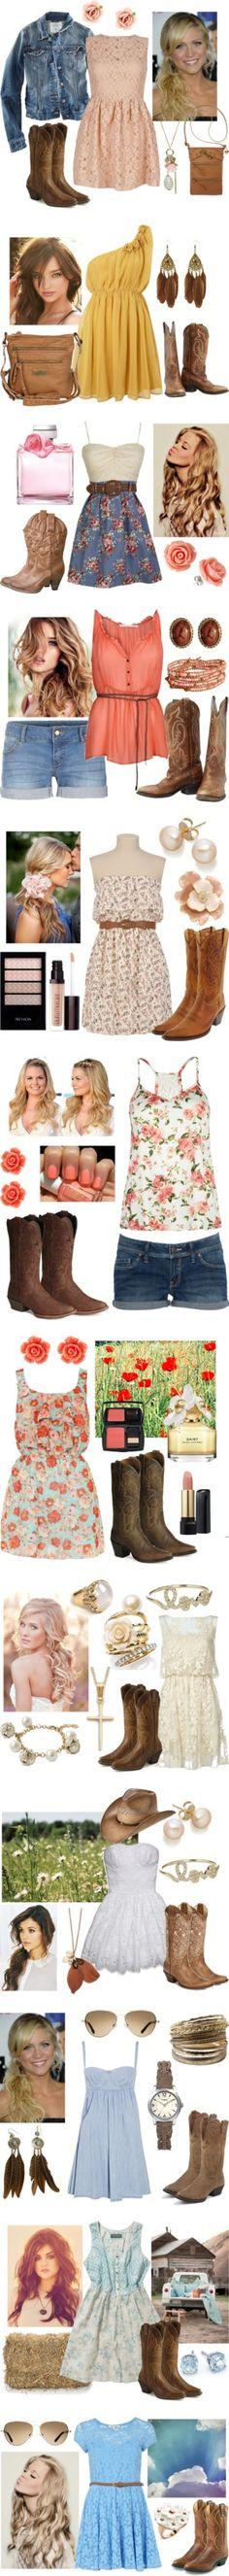 cowgirl boots, cowboy boots, dress, country girls, summer outfits